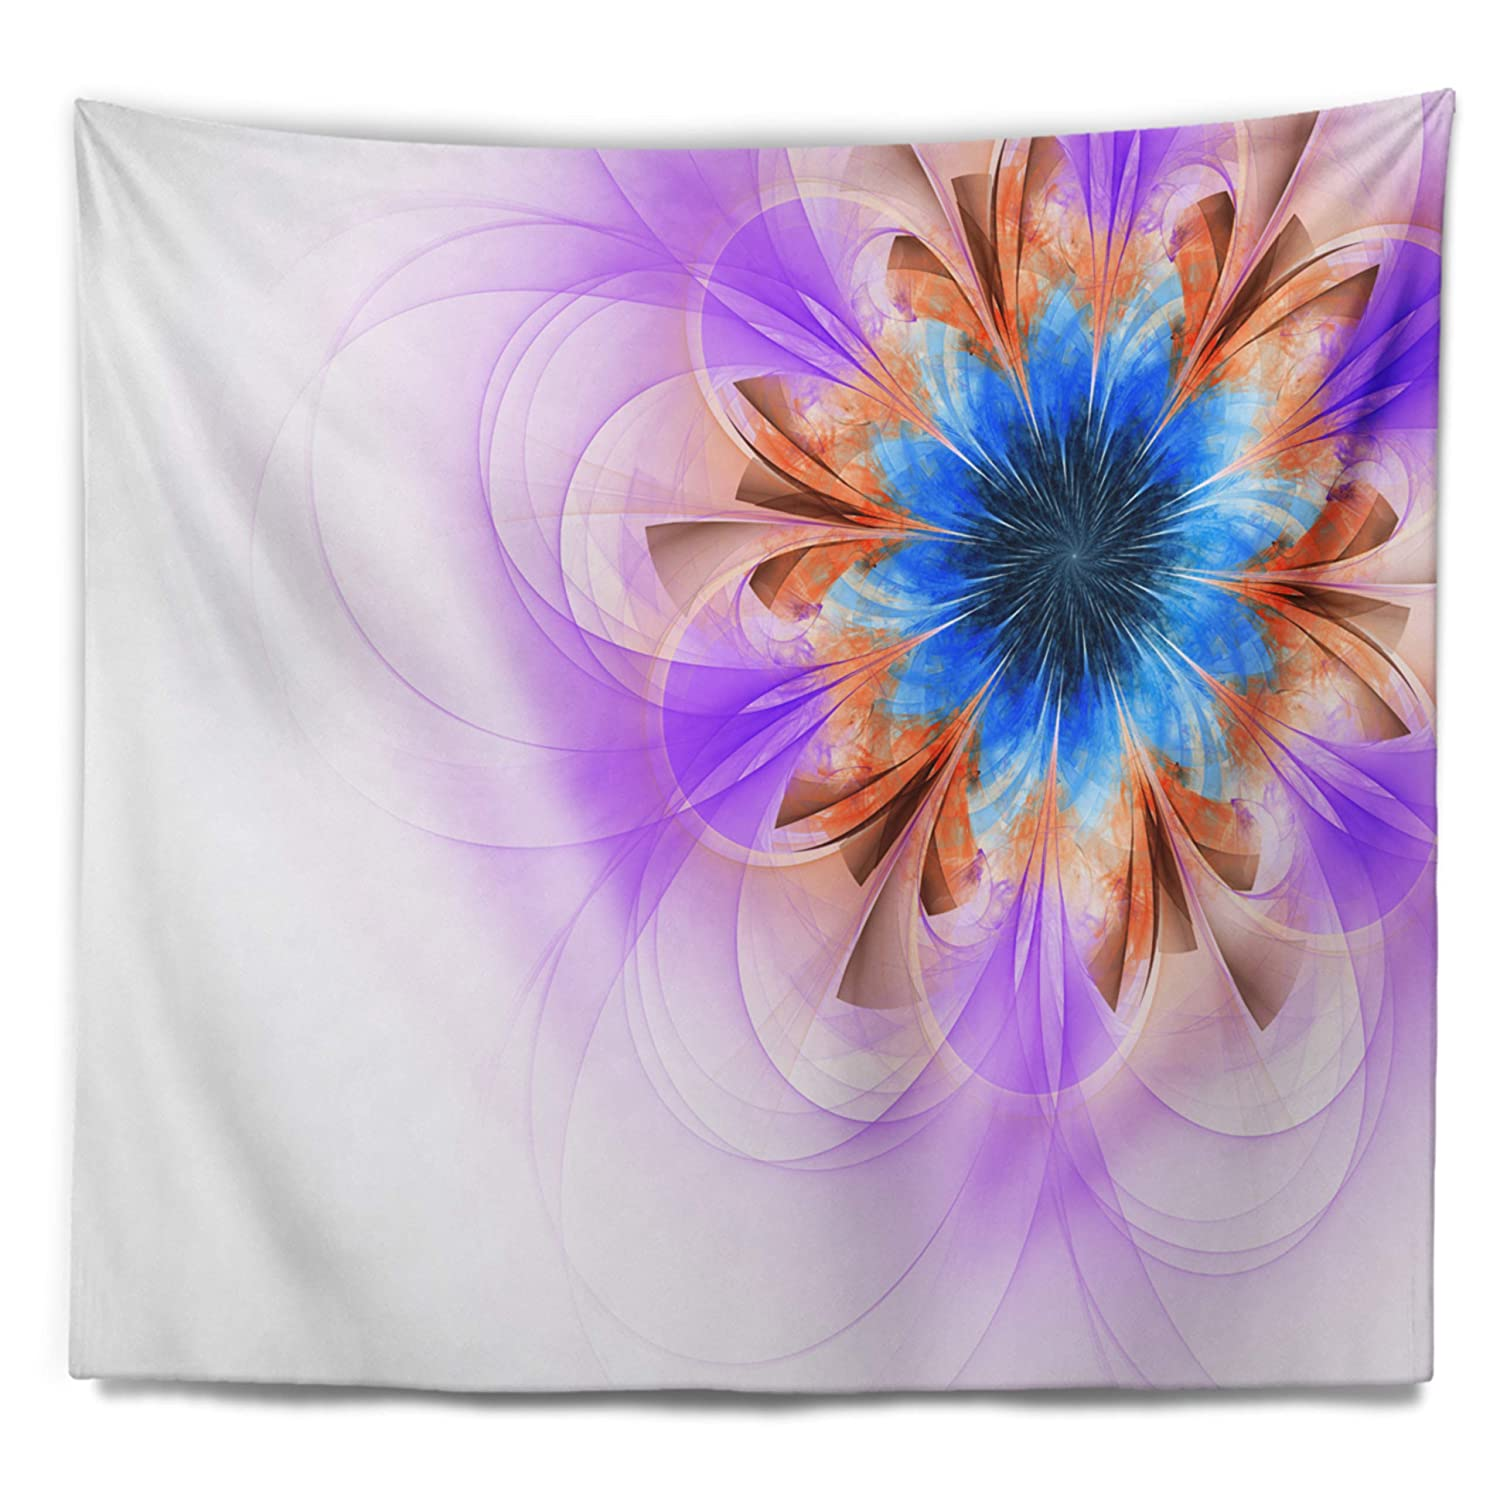 Tapestries Home Kitchen X 50 In Designart Tap12015 60 50 Blue And Purple Symmetrical Fractal Flower Floral Blanket Décor Art For Home And Office Wall Tapestry Large Created On Lightweight Polyester Fabric 60 In